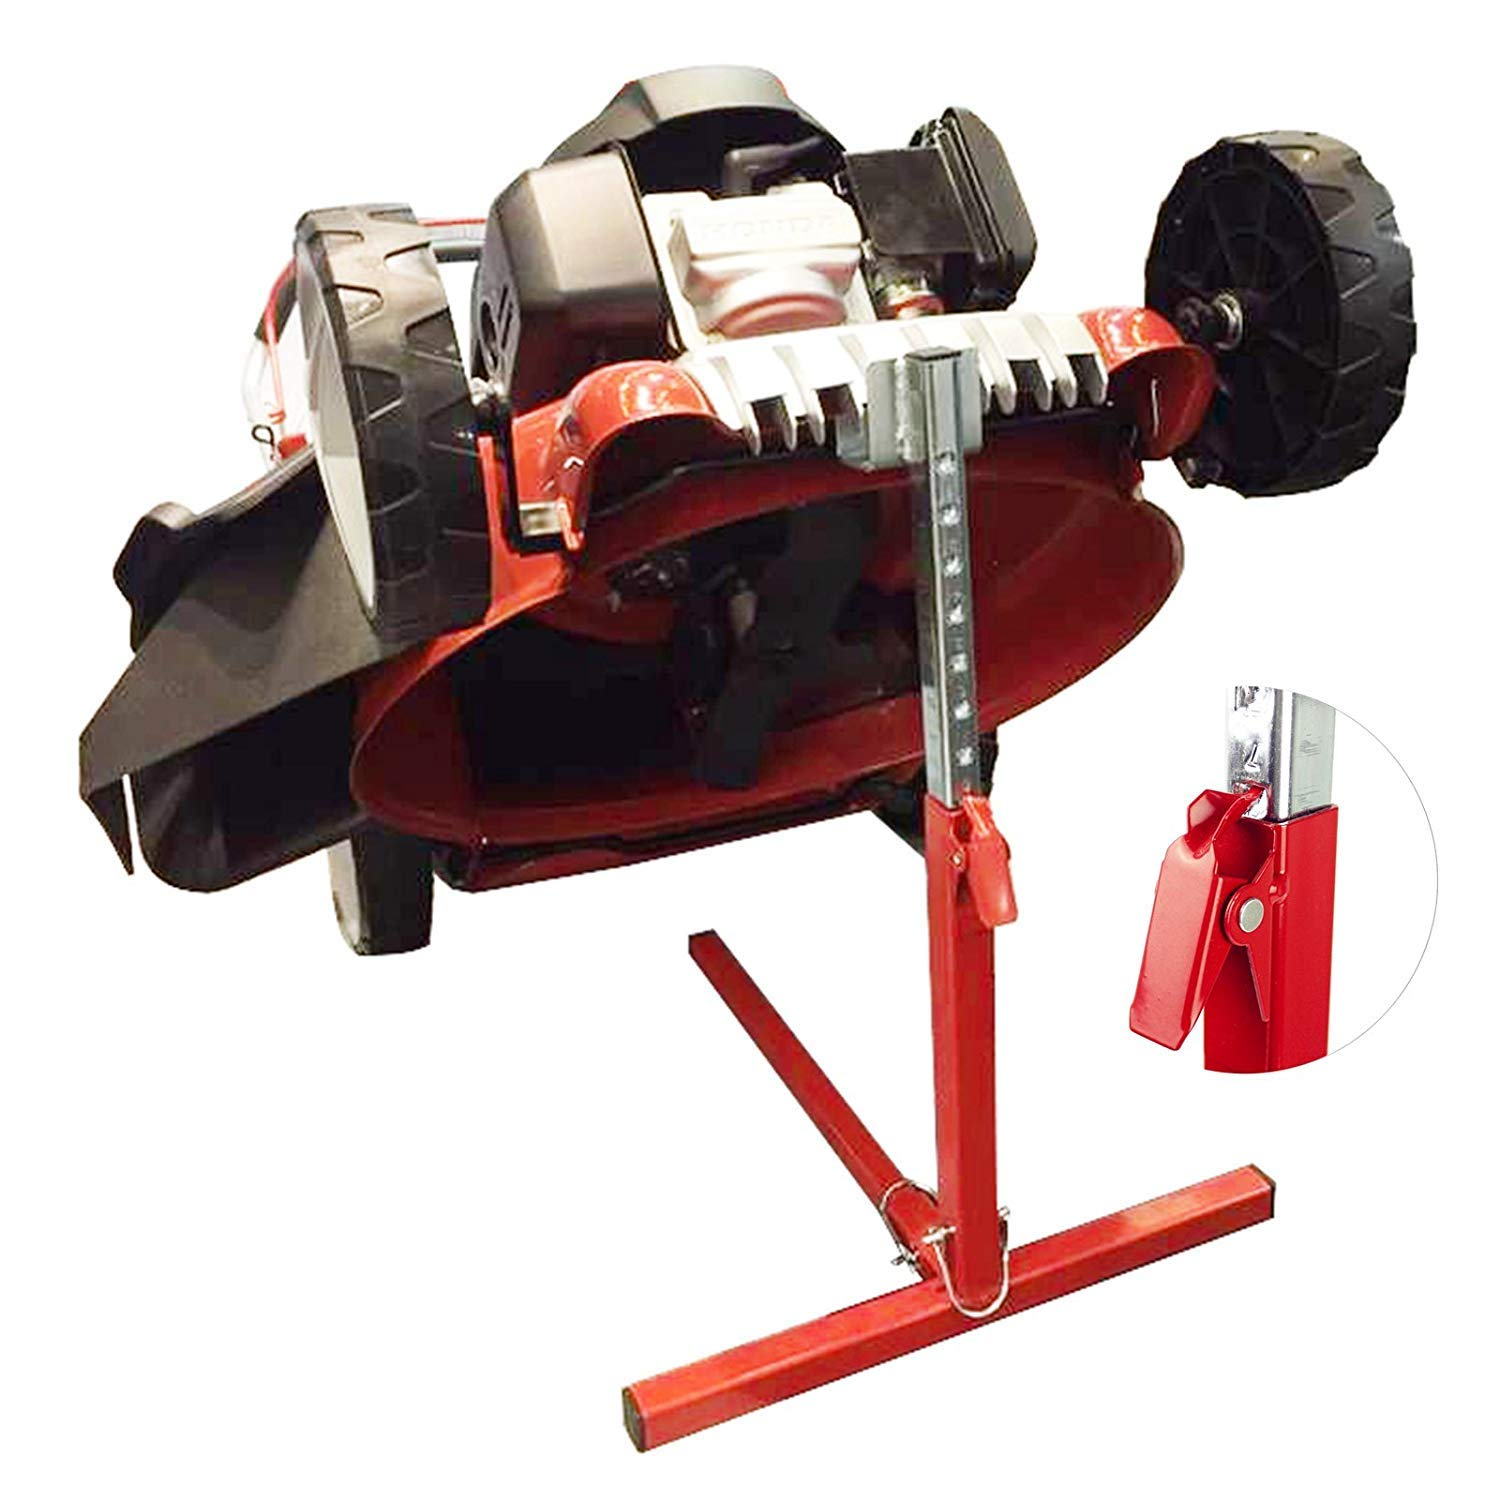 copachi lawn mower lift tools image